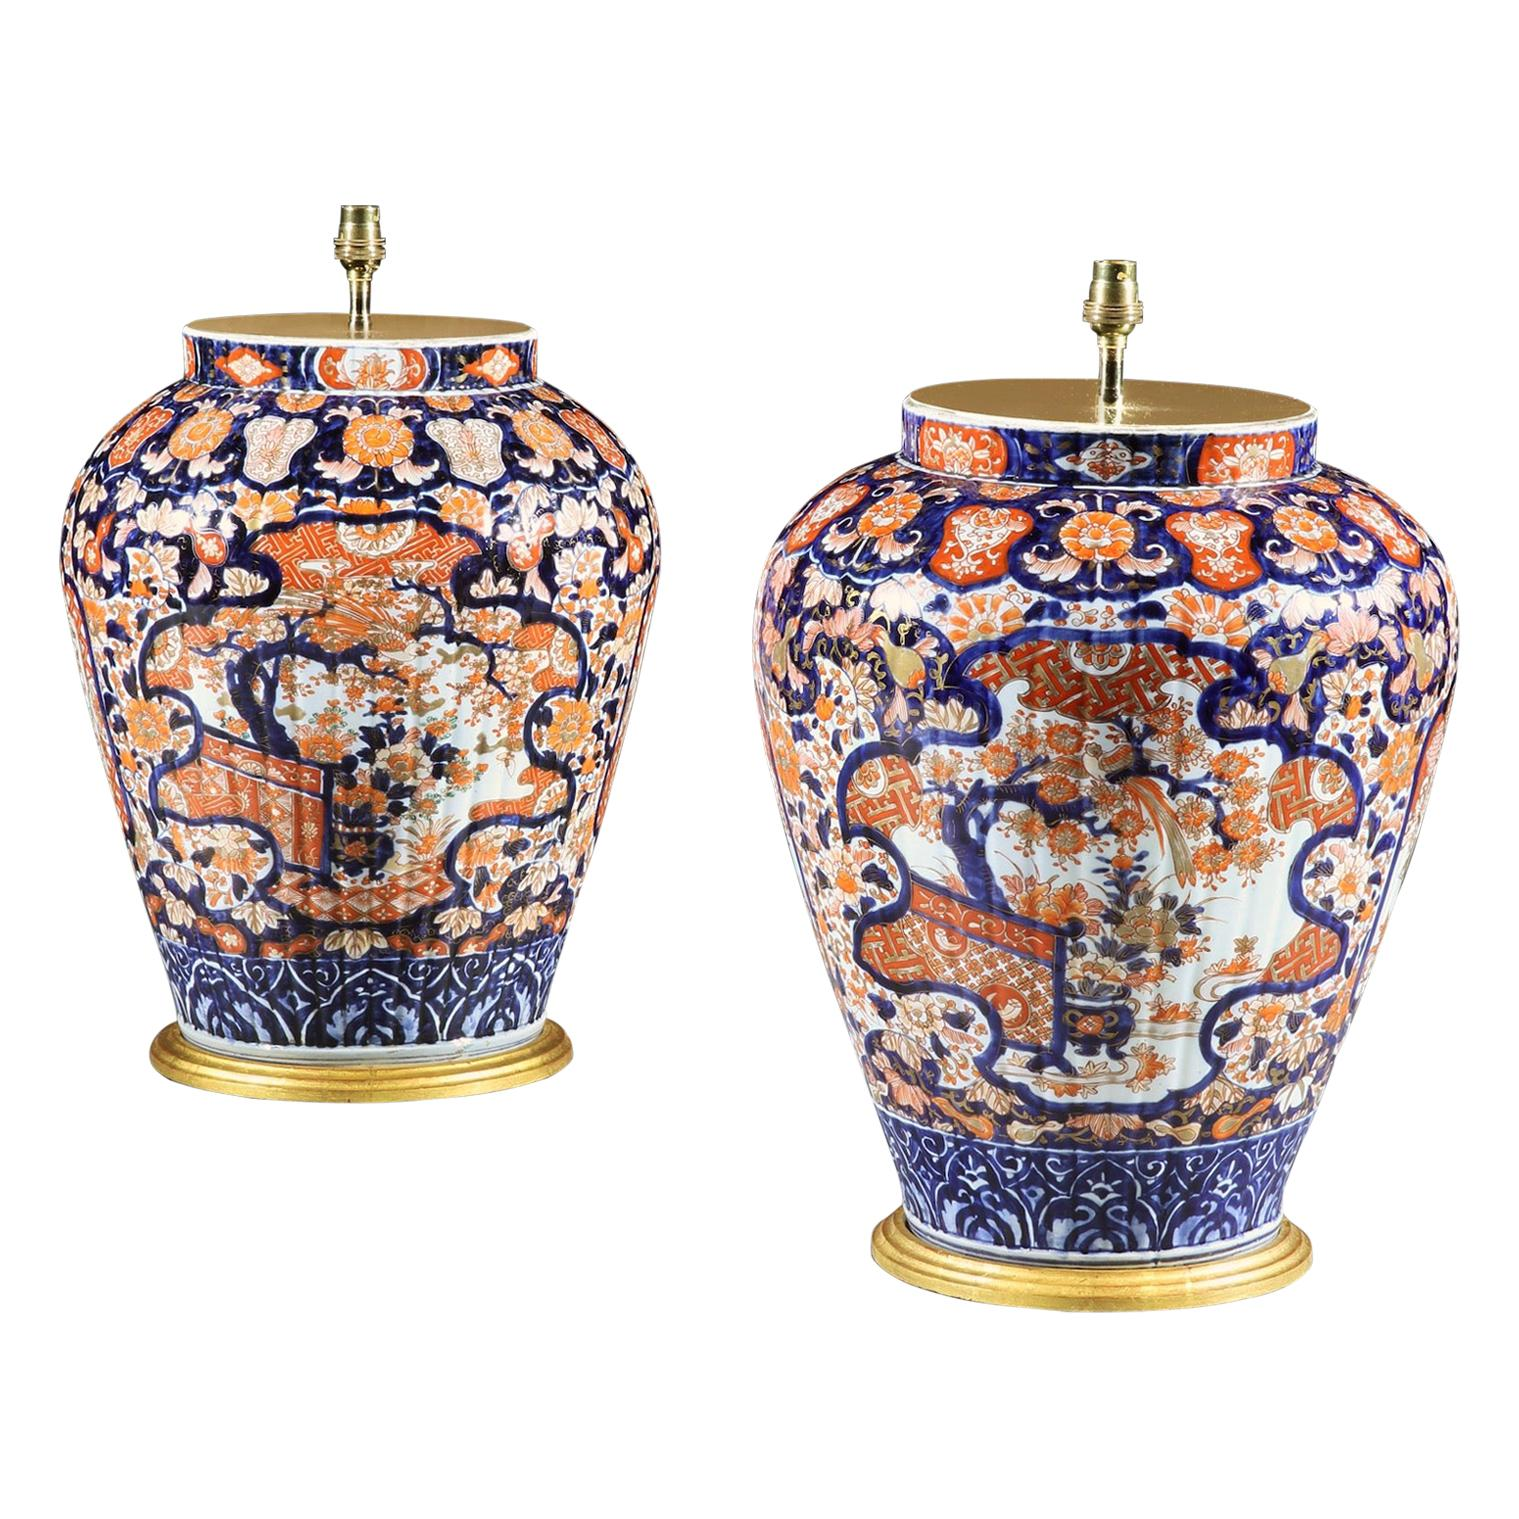 Pair of 19th Century Very Large Imari Japanese Porcelain Antique Table Lamps